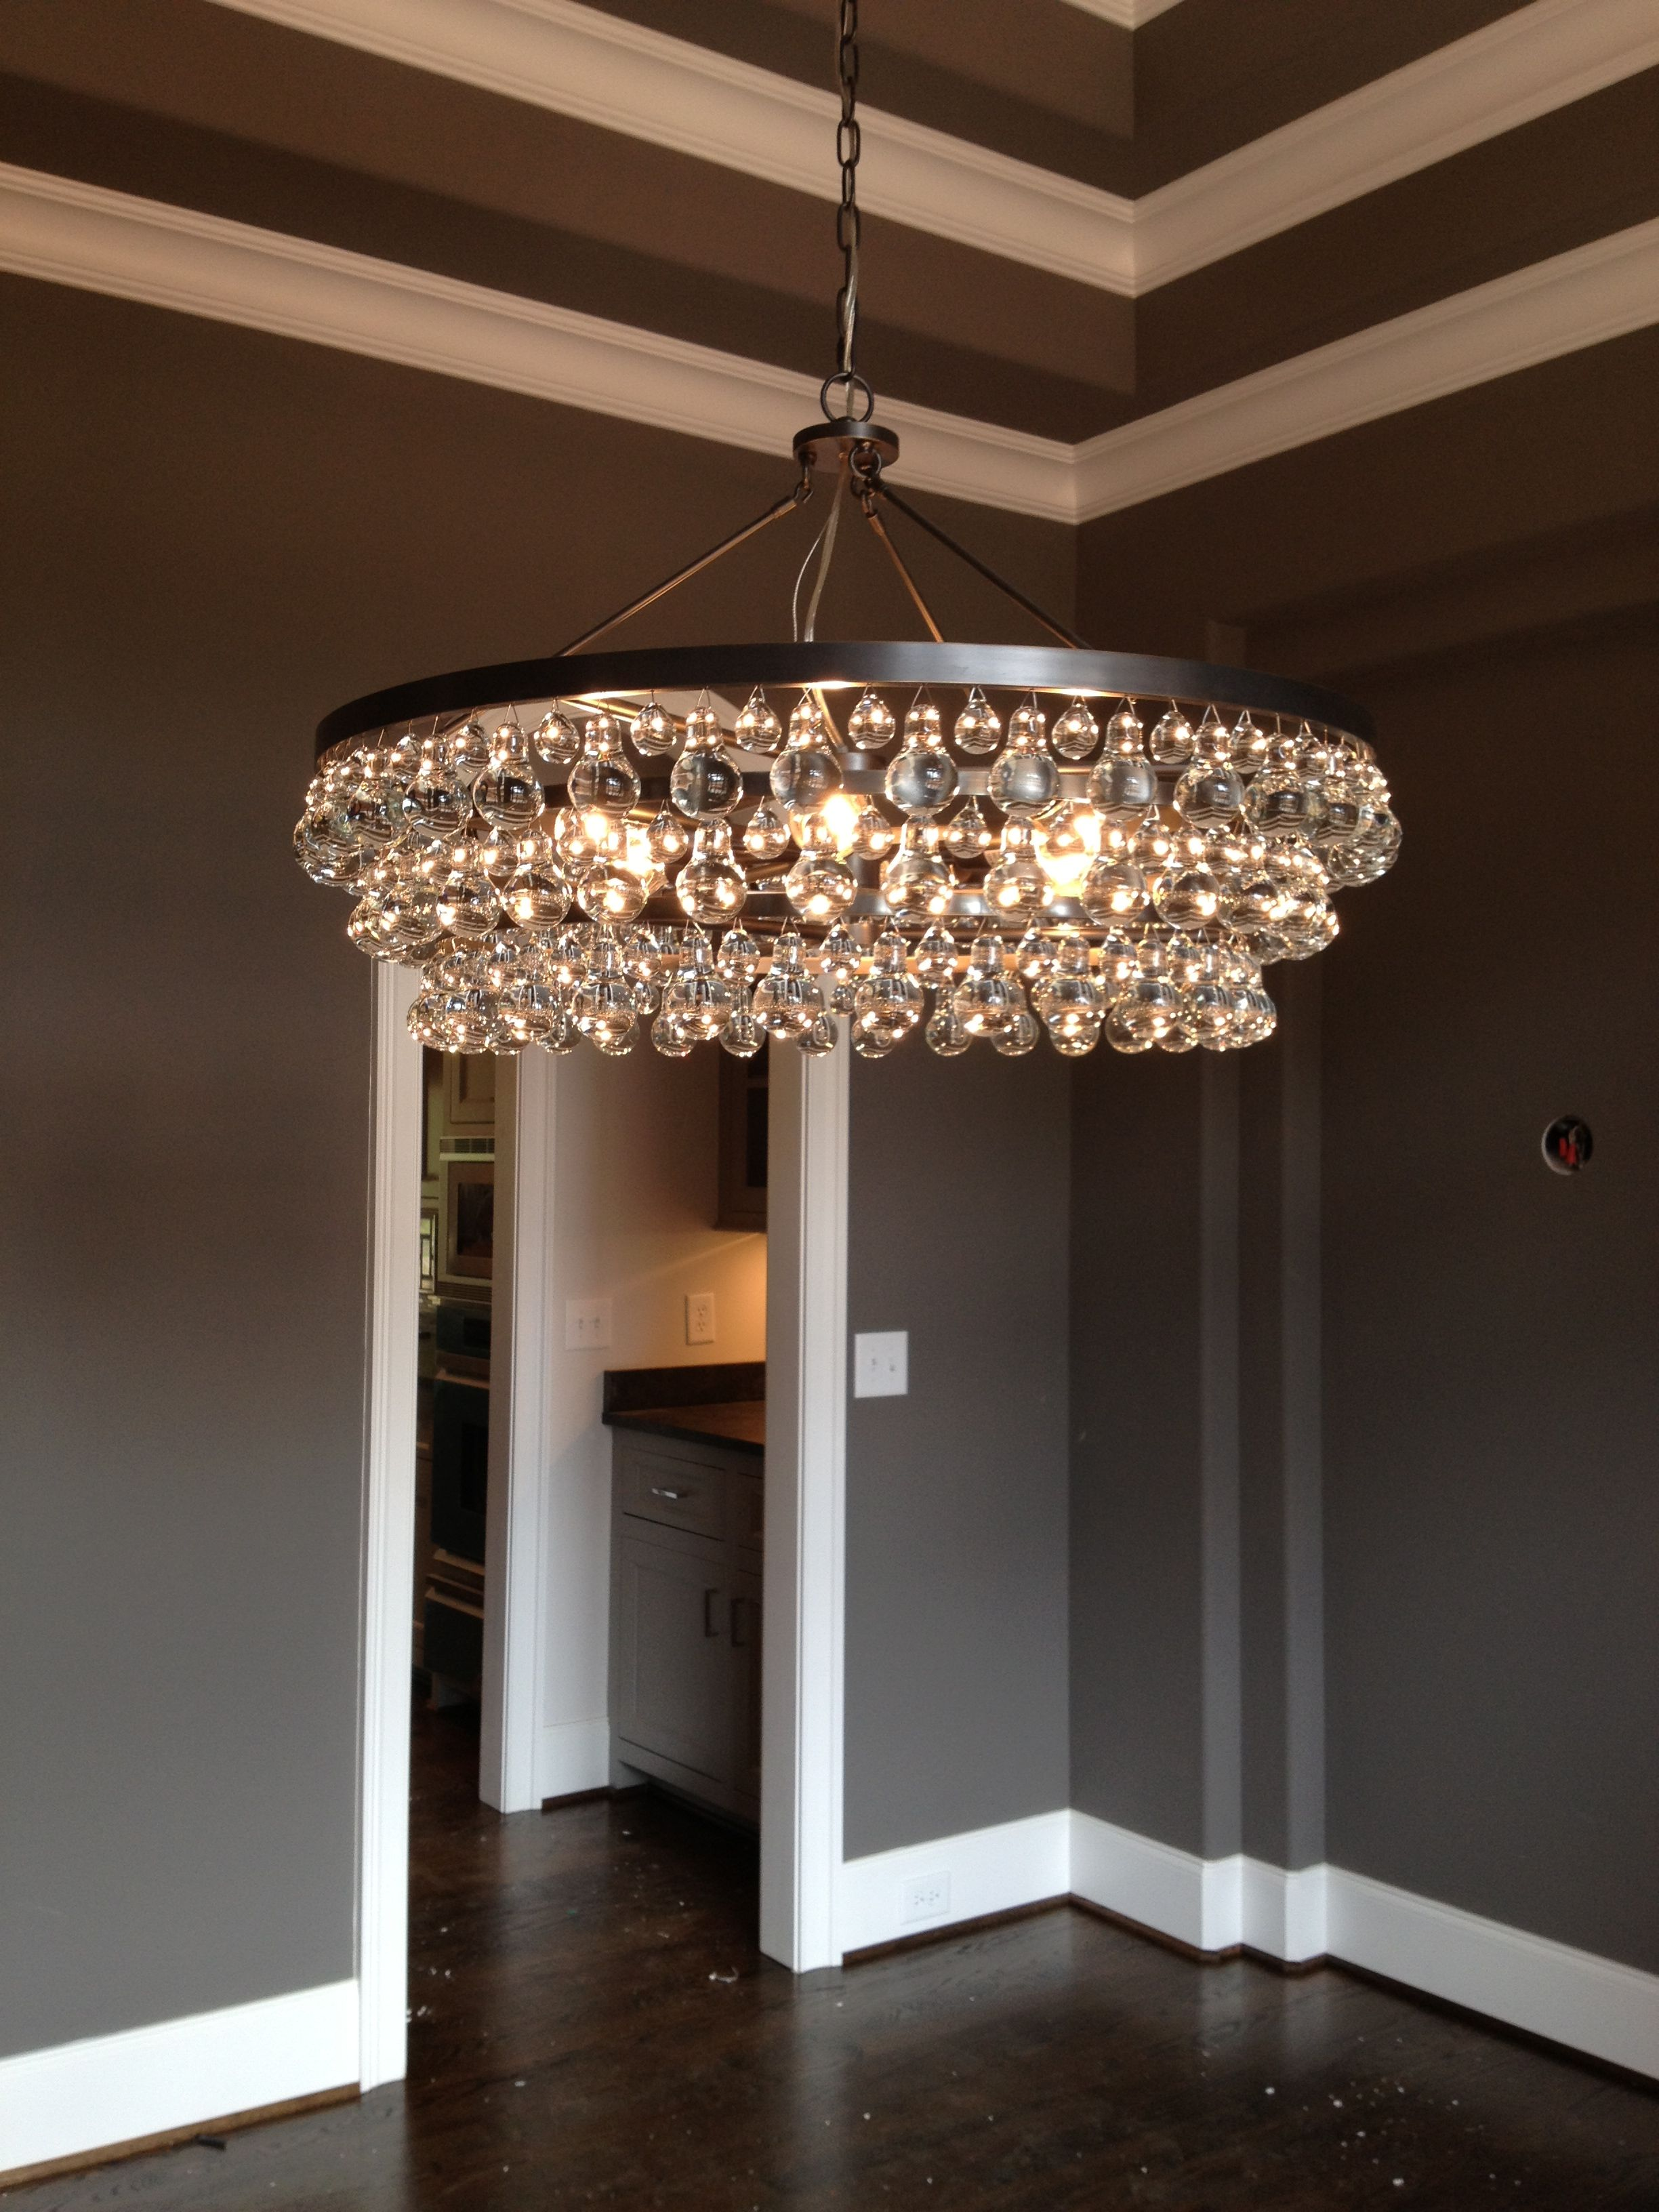 The most perfect chandelier ever designed gauntlet gray white robert abbey bling chandelier sherwin williams gauntlet gray with pure white trim arubaitofo Gallery